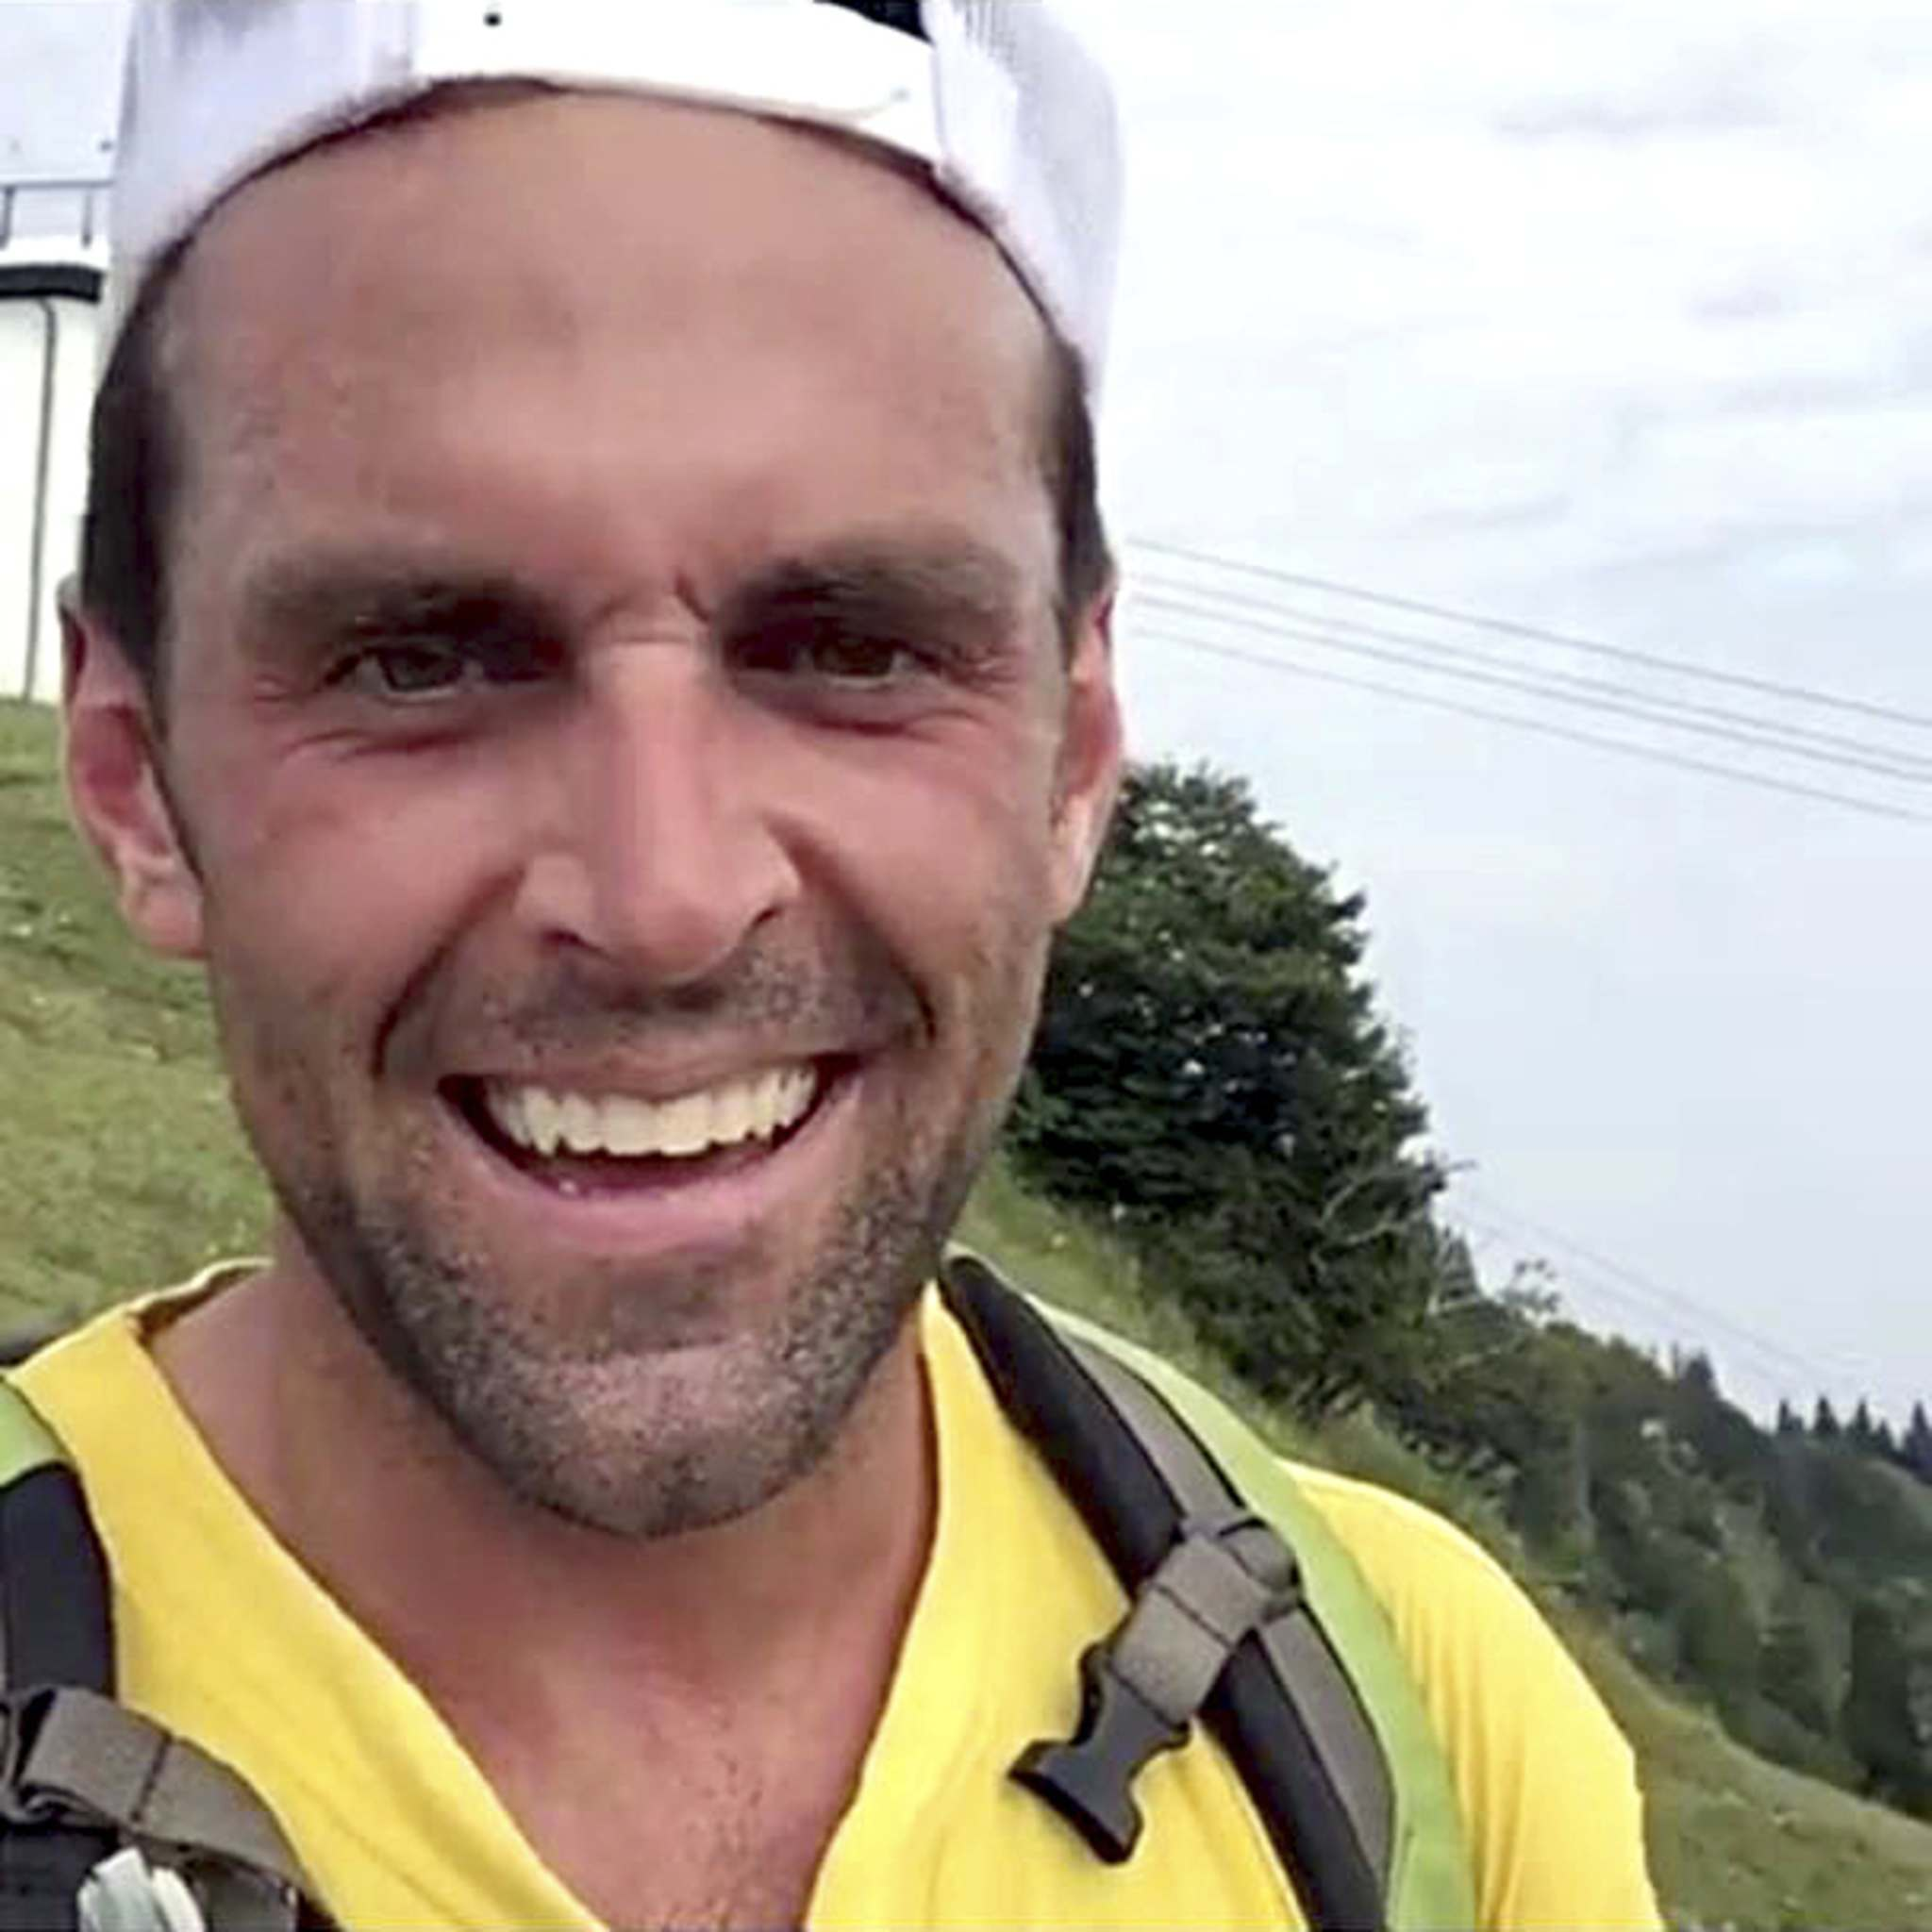 Family confirms missing Manitoba hiker found dead in Alps